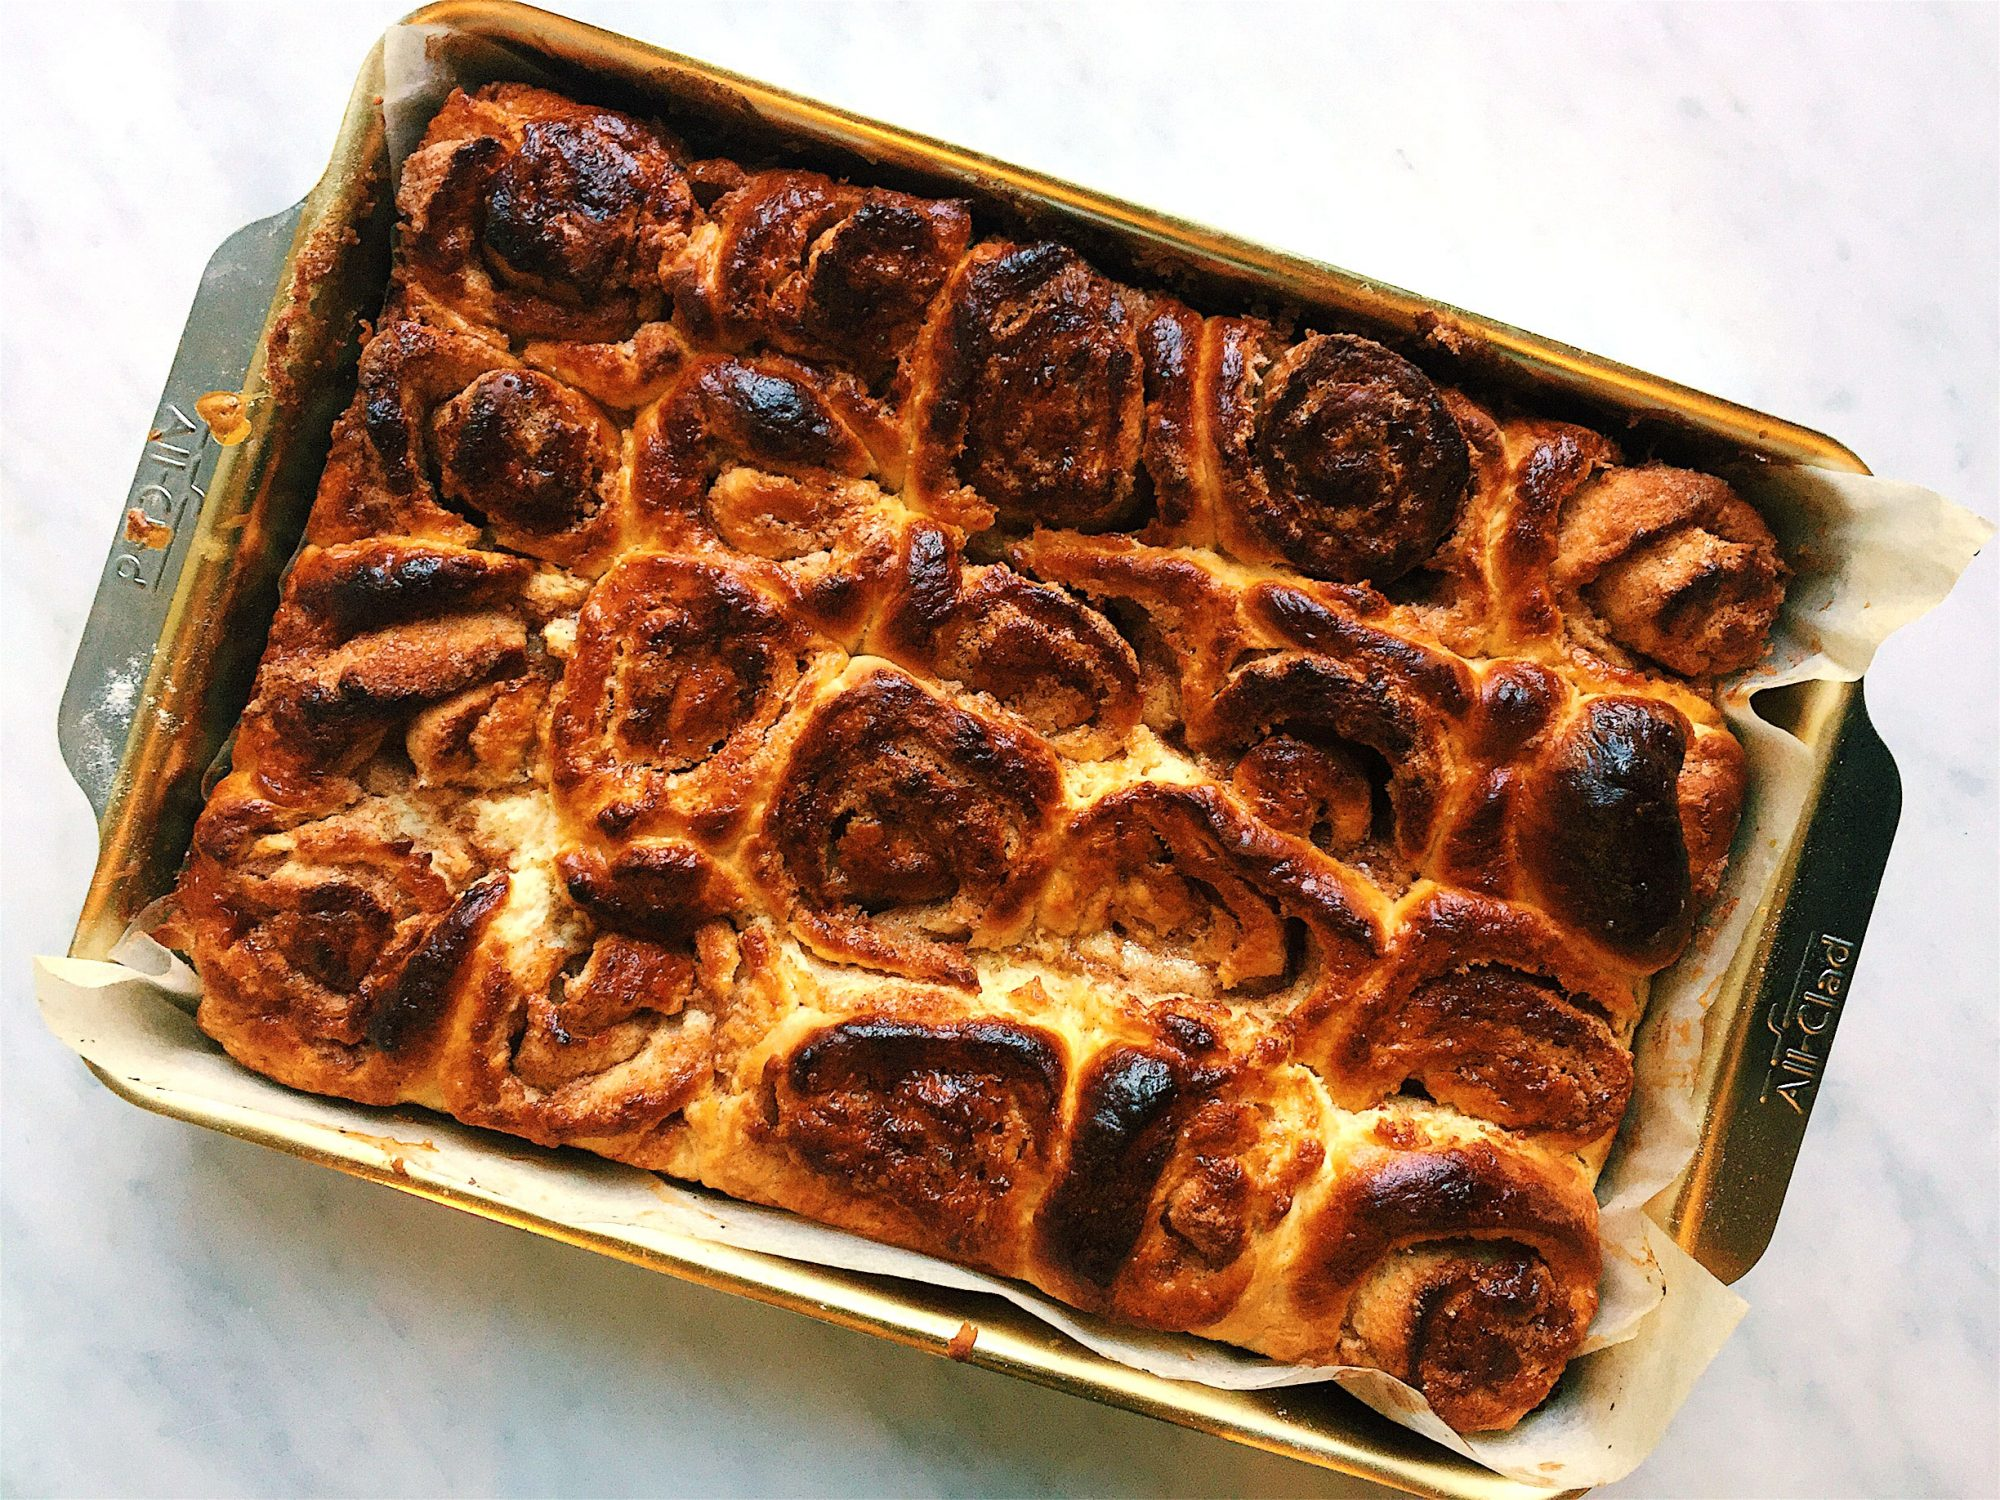 cinnamon-rolls-beauty-nigella.jpg